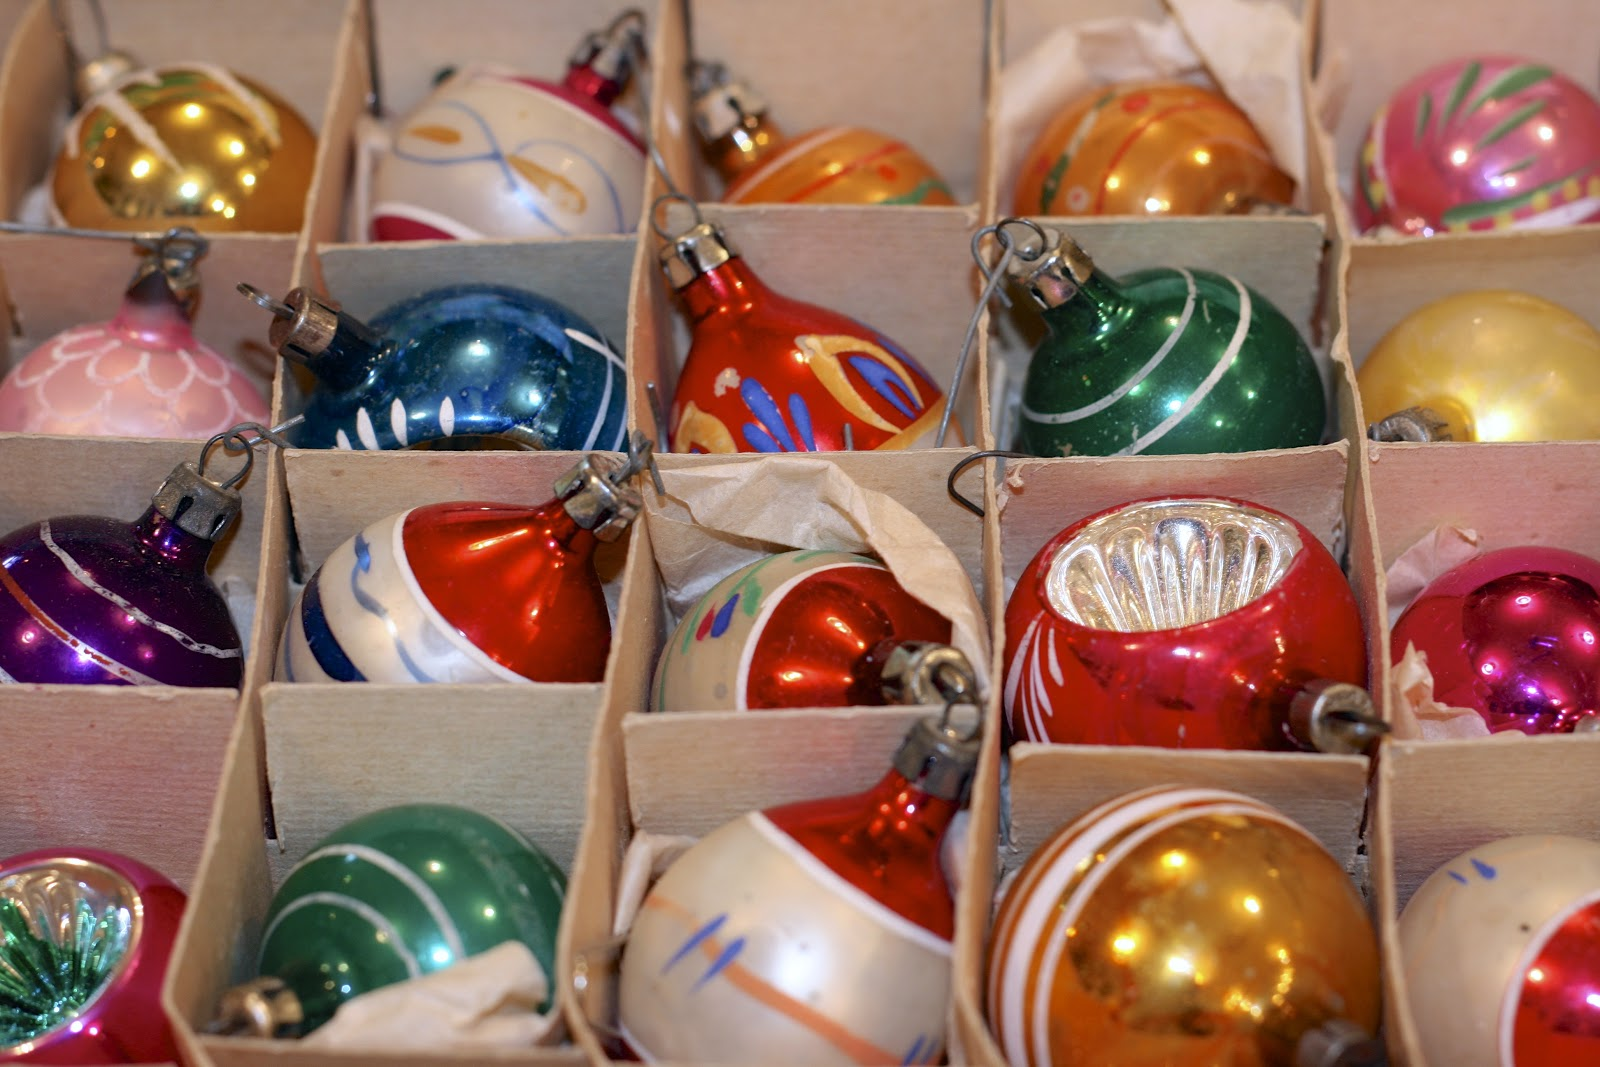 The Polished Pebble: Collecting: Vintage Christmas Ornaments